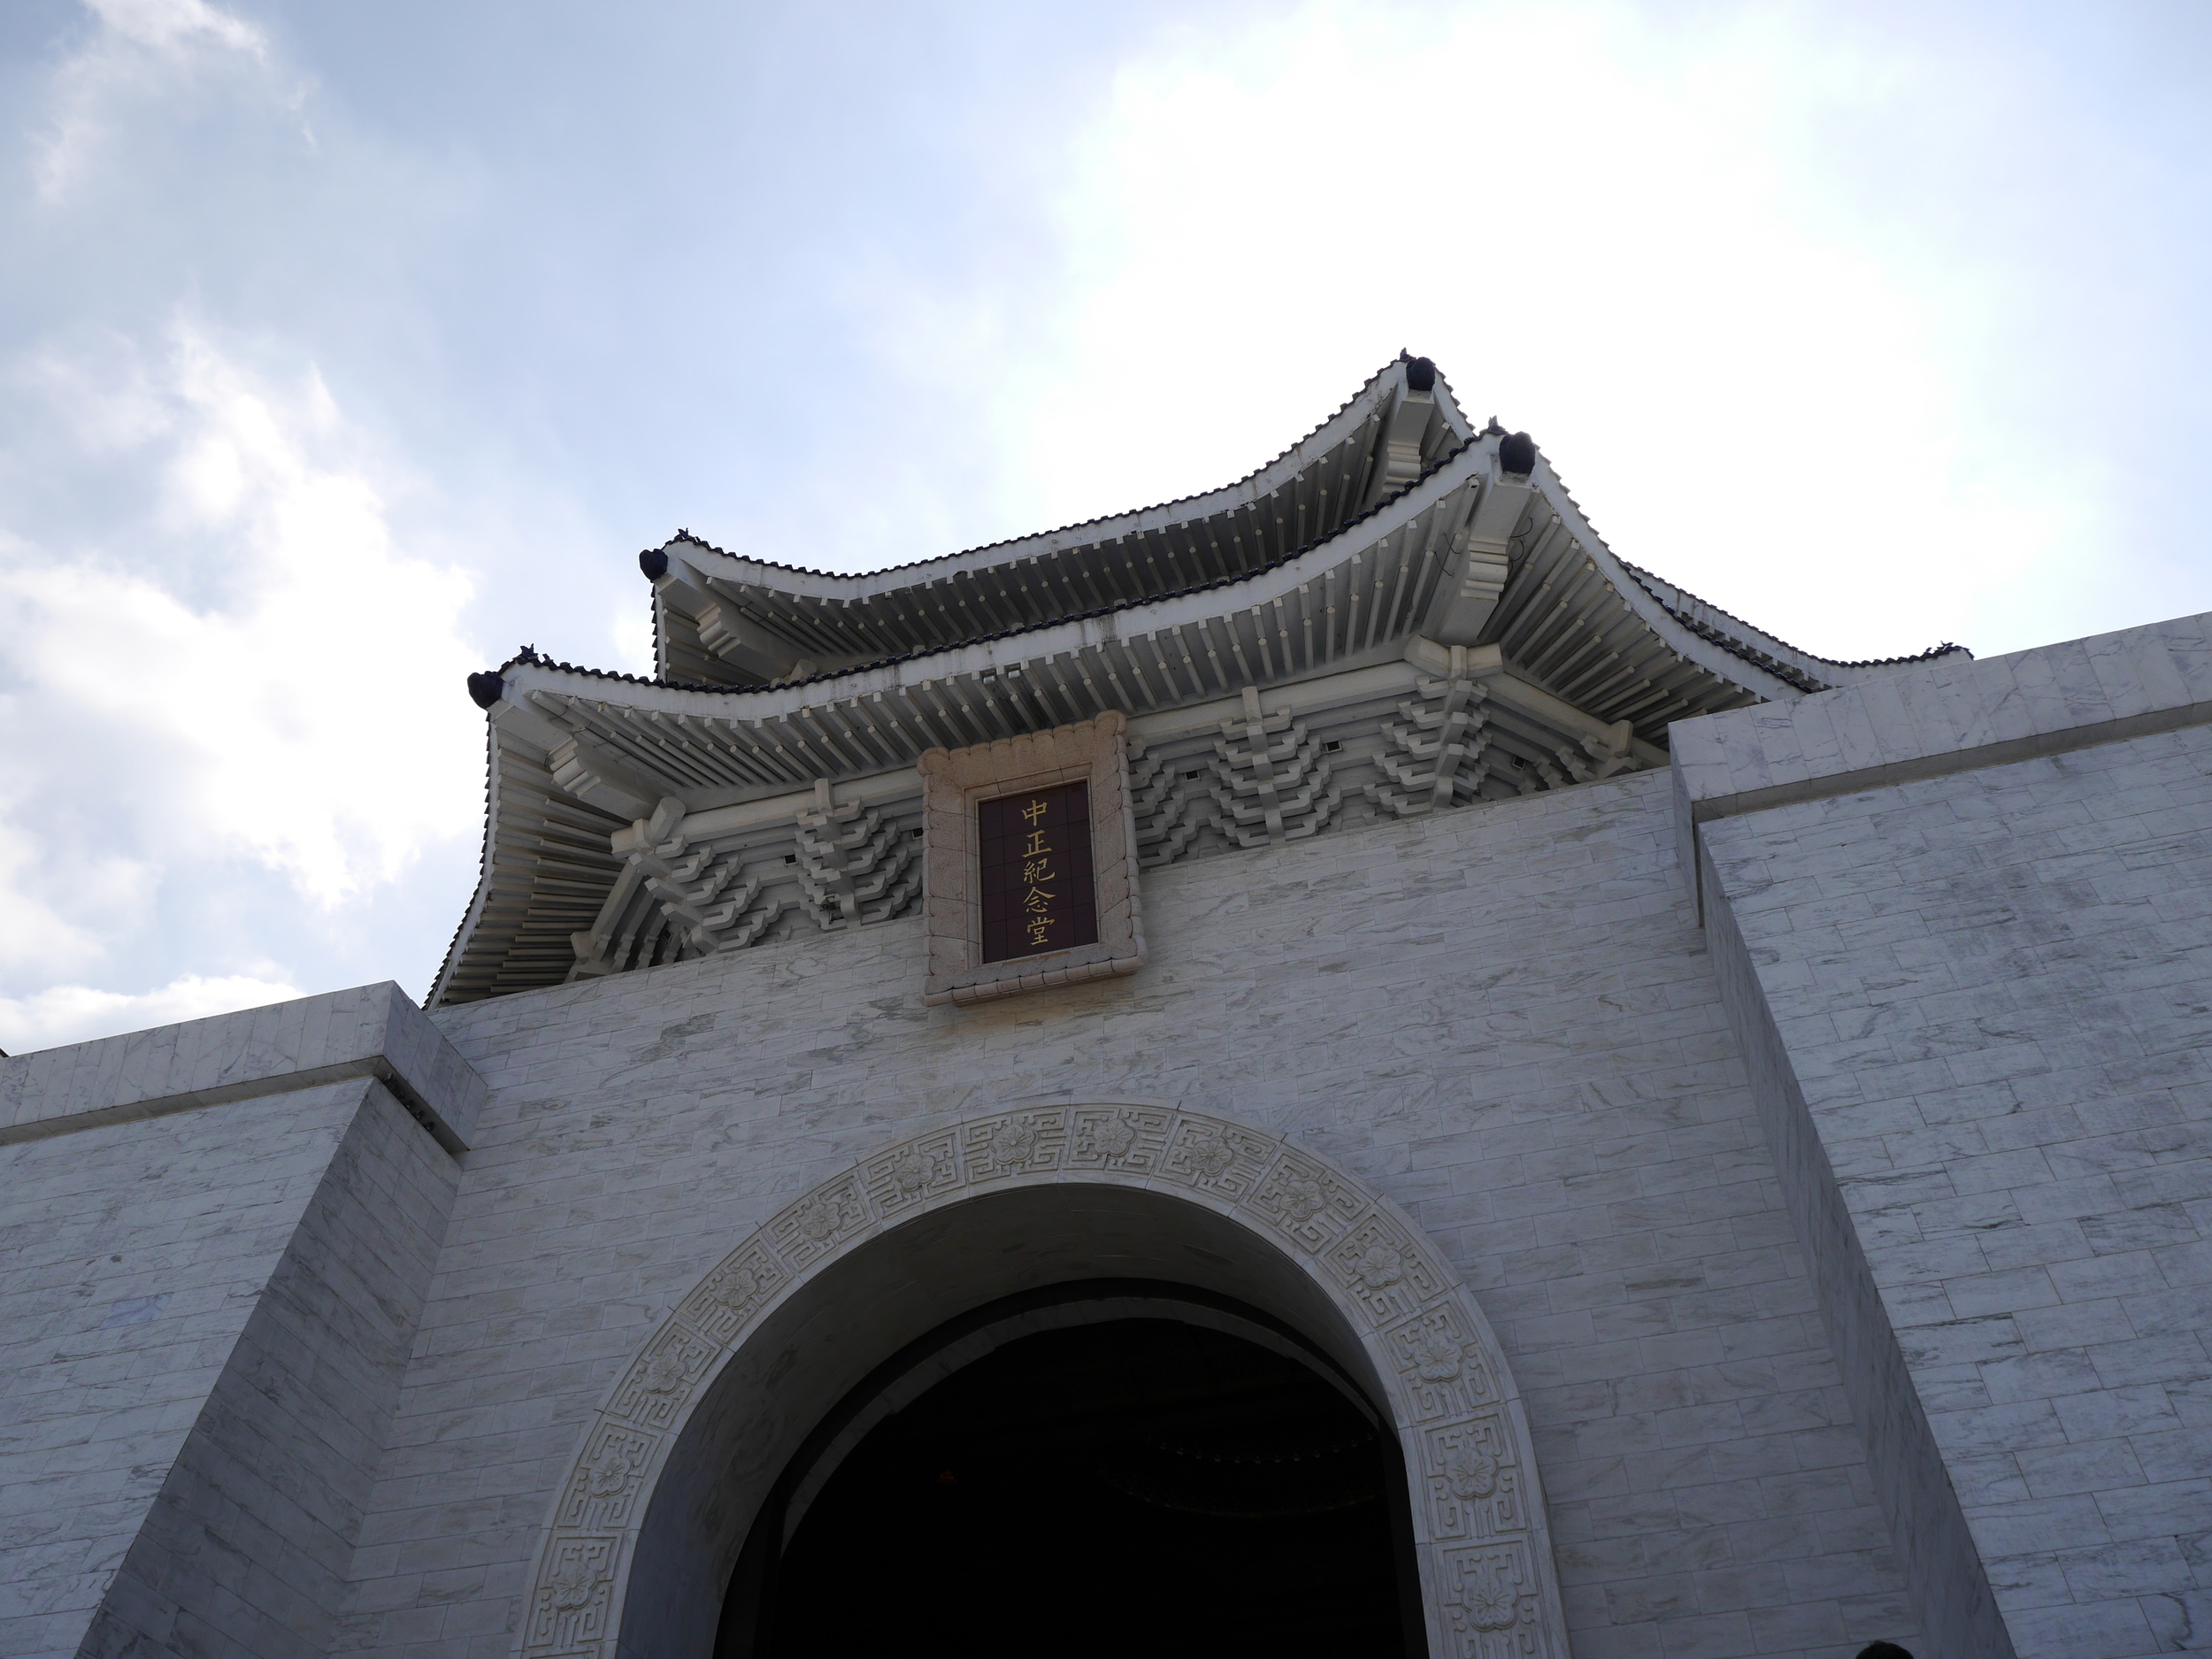 Looking up at the entrance to the Chiang Kai-shek Memorial Hall. The underside of the roof gives a bit of a Lego vibe to me.